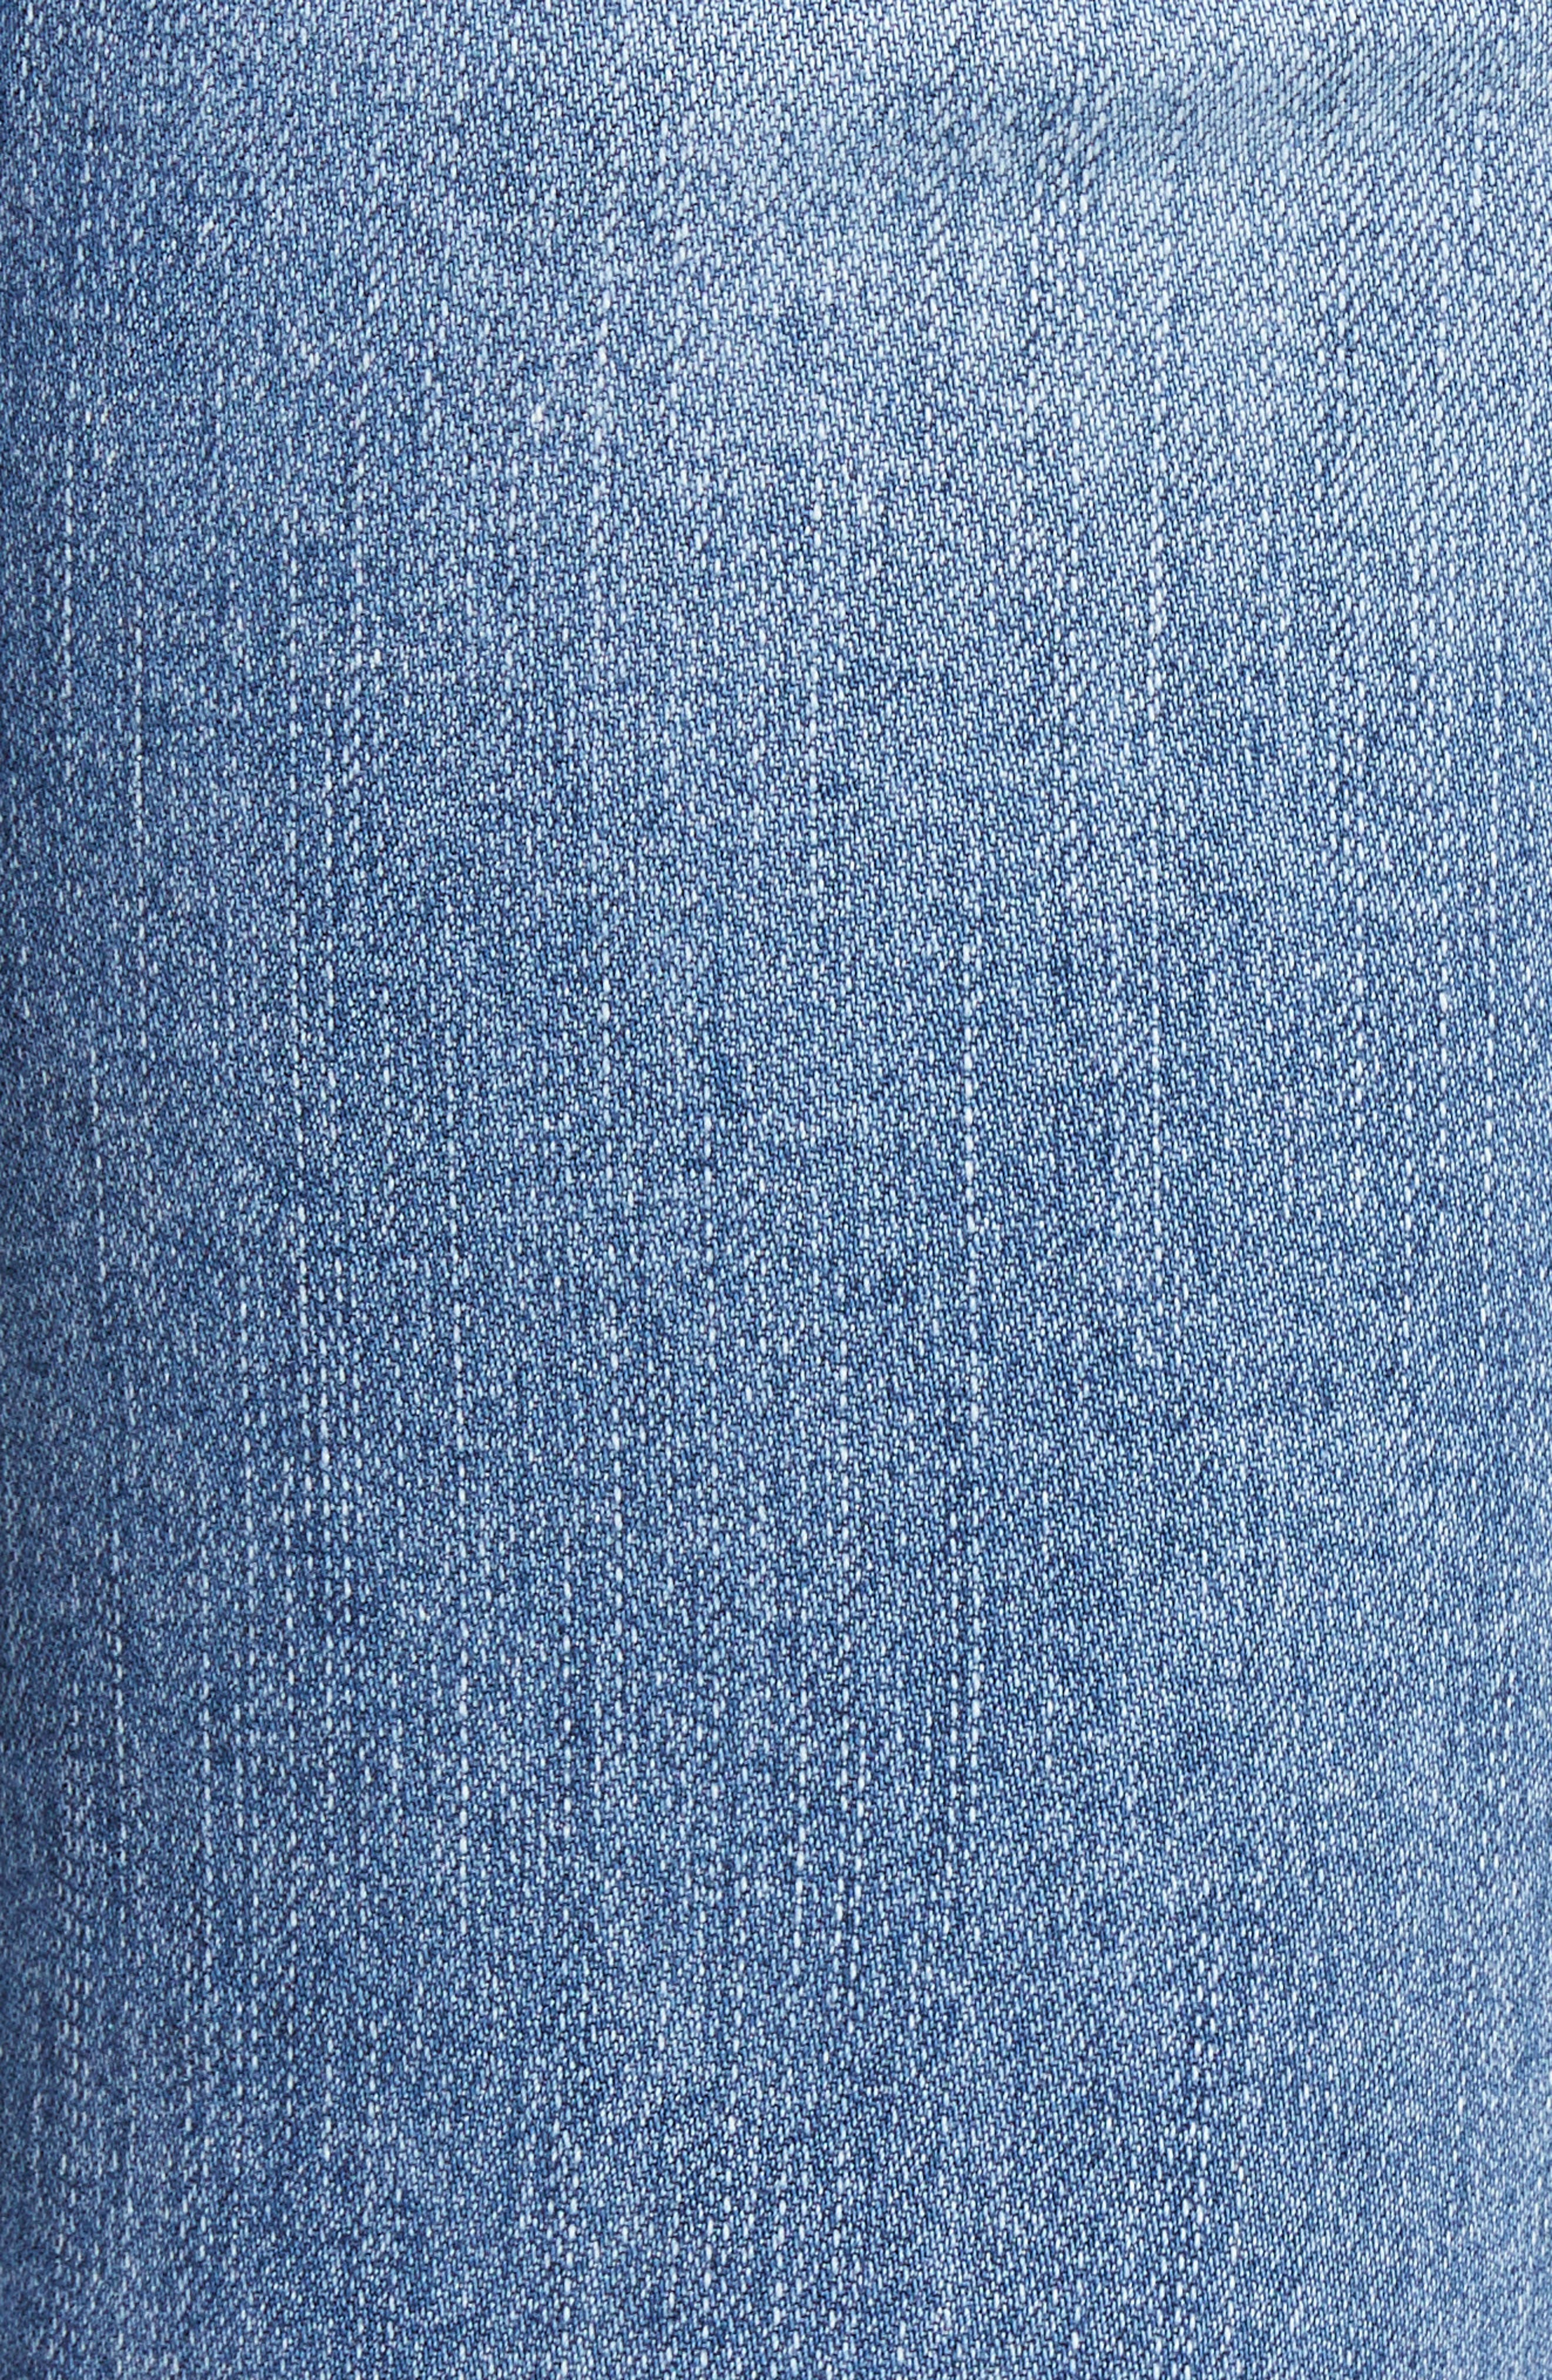 Reese Ripped Raw Edge Ankle Jeans,                             Alternate thumbnail 5, color,                             Assess